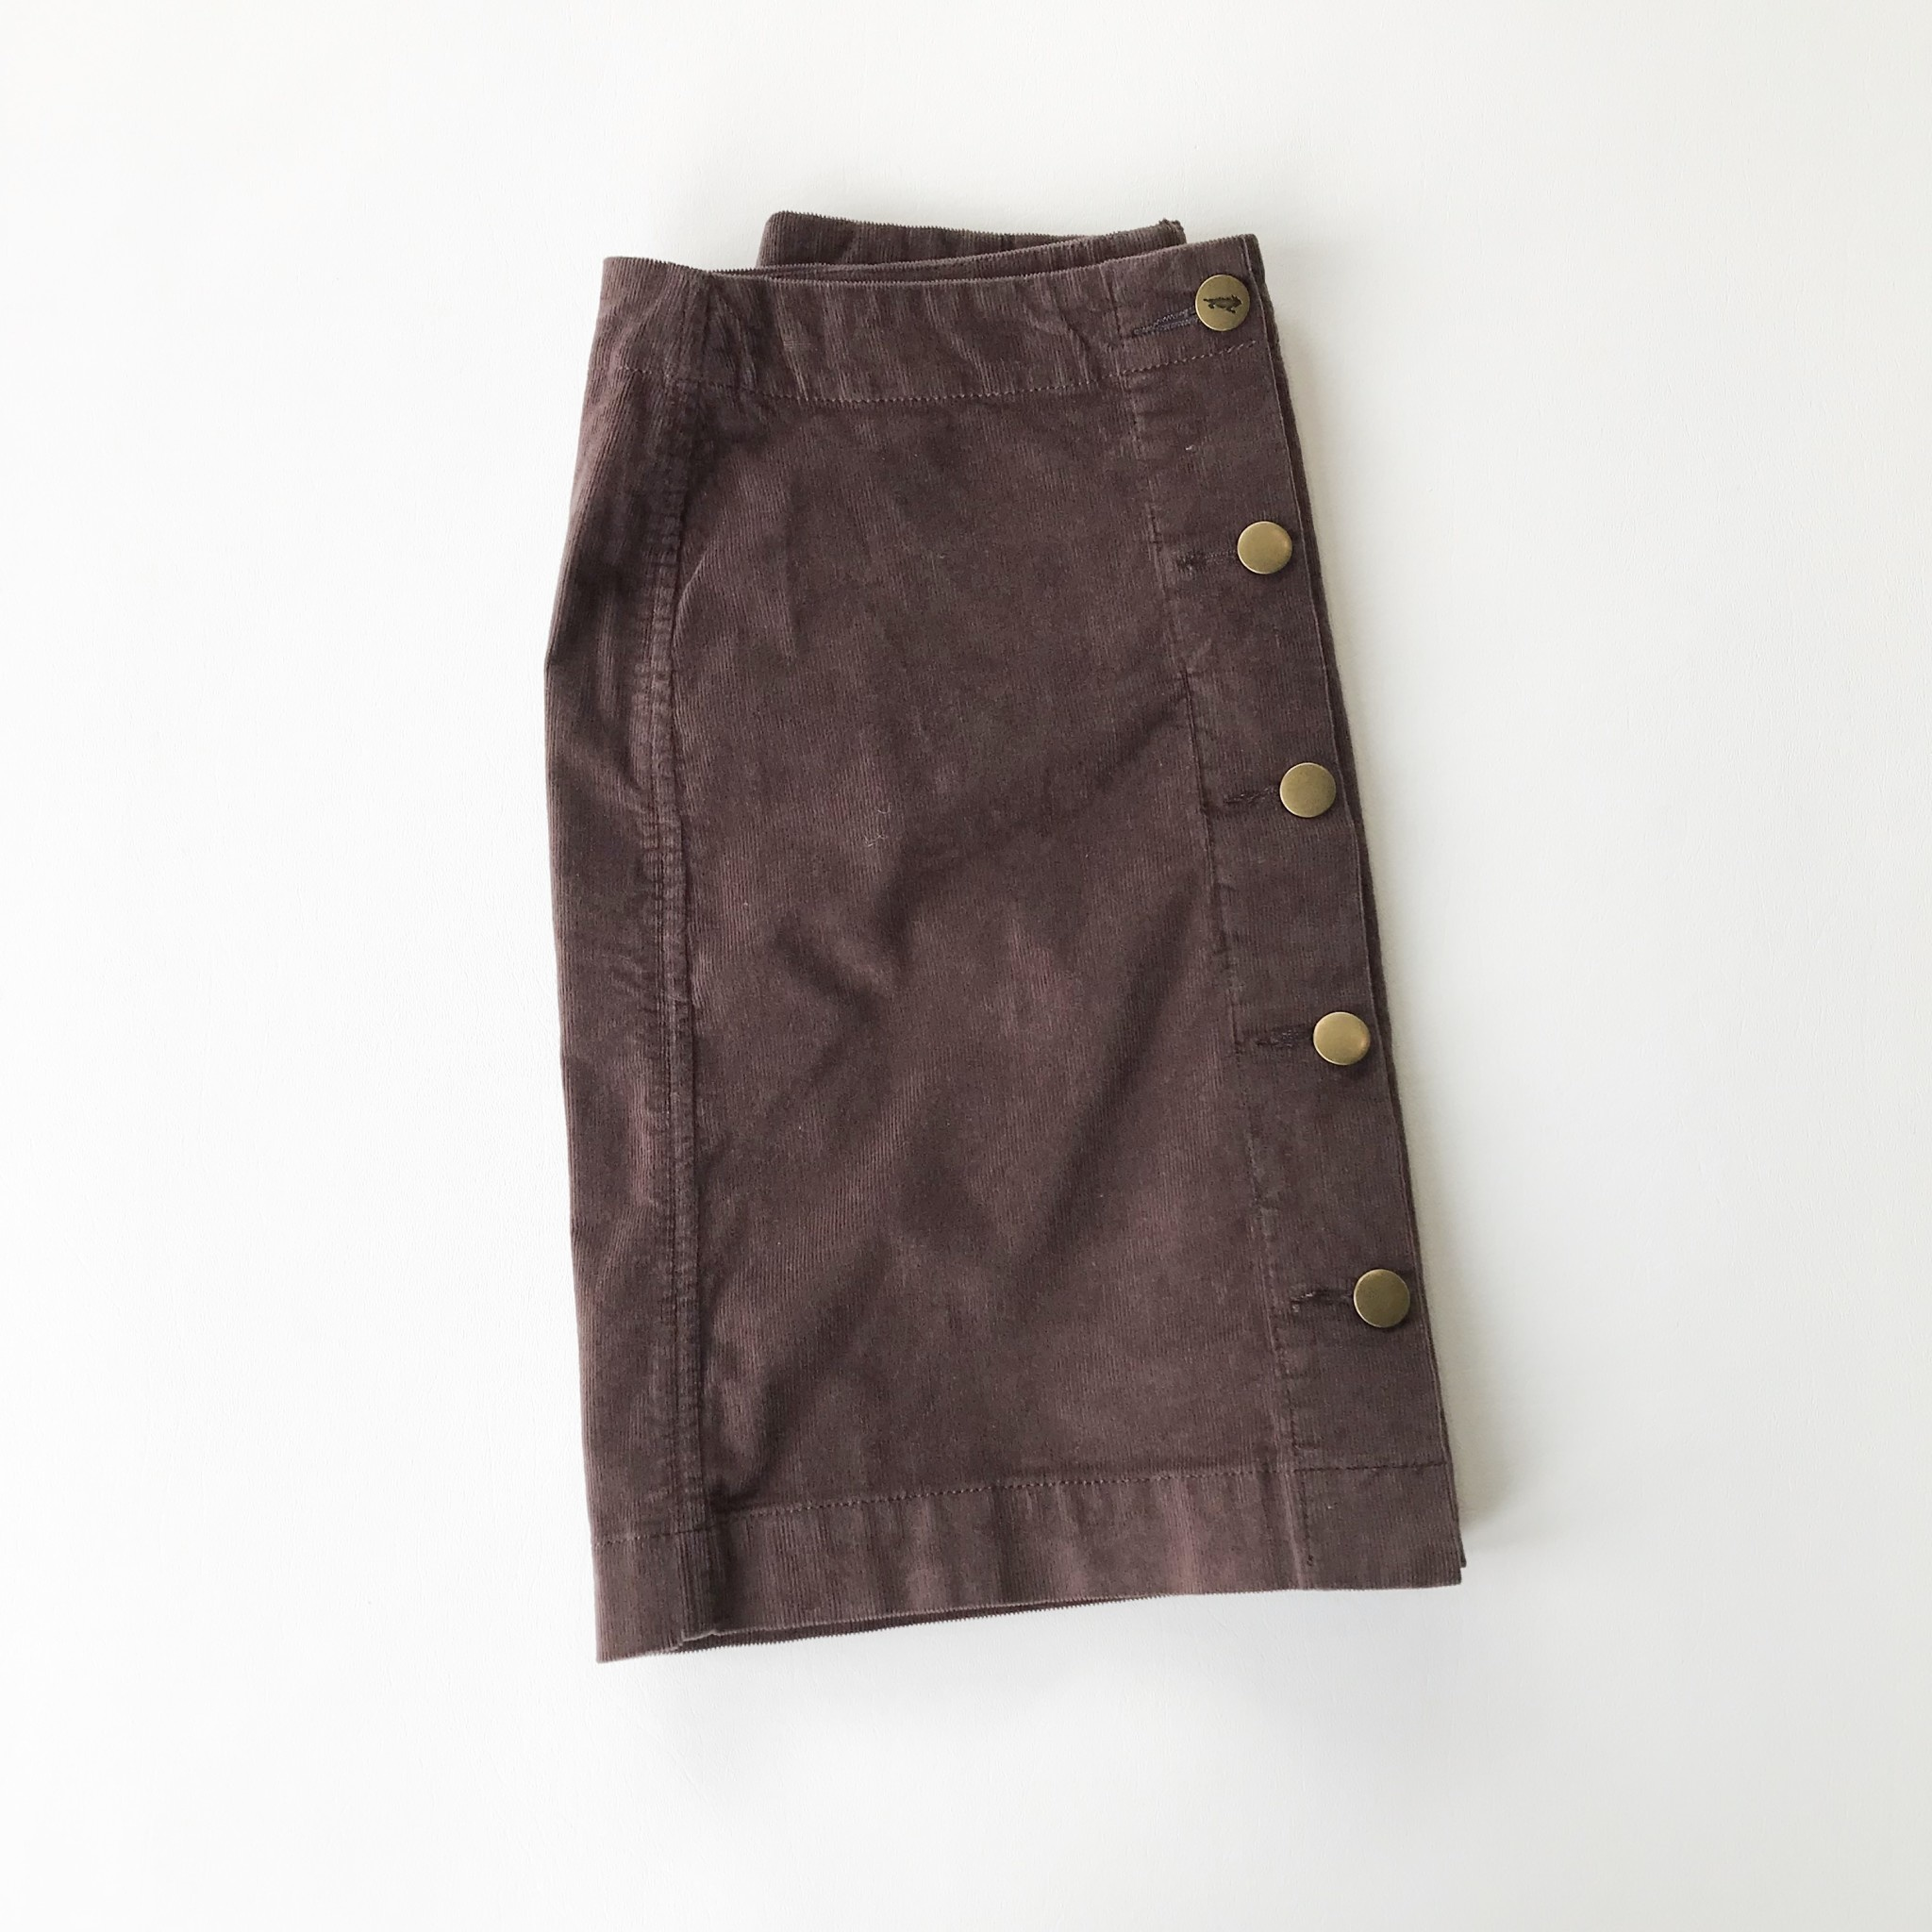 Toad & Co cruiser cord skirt